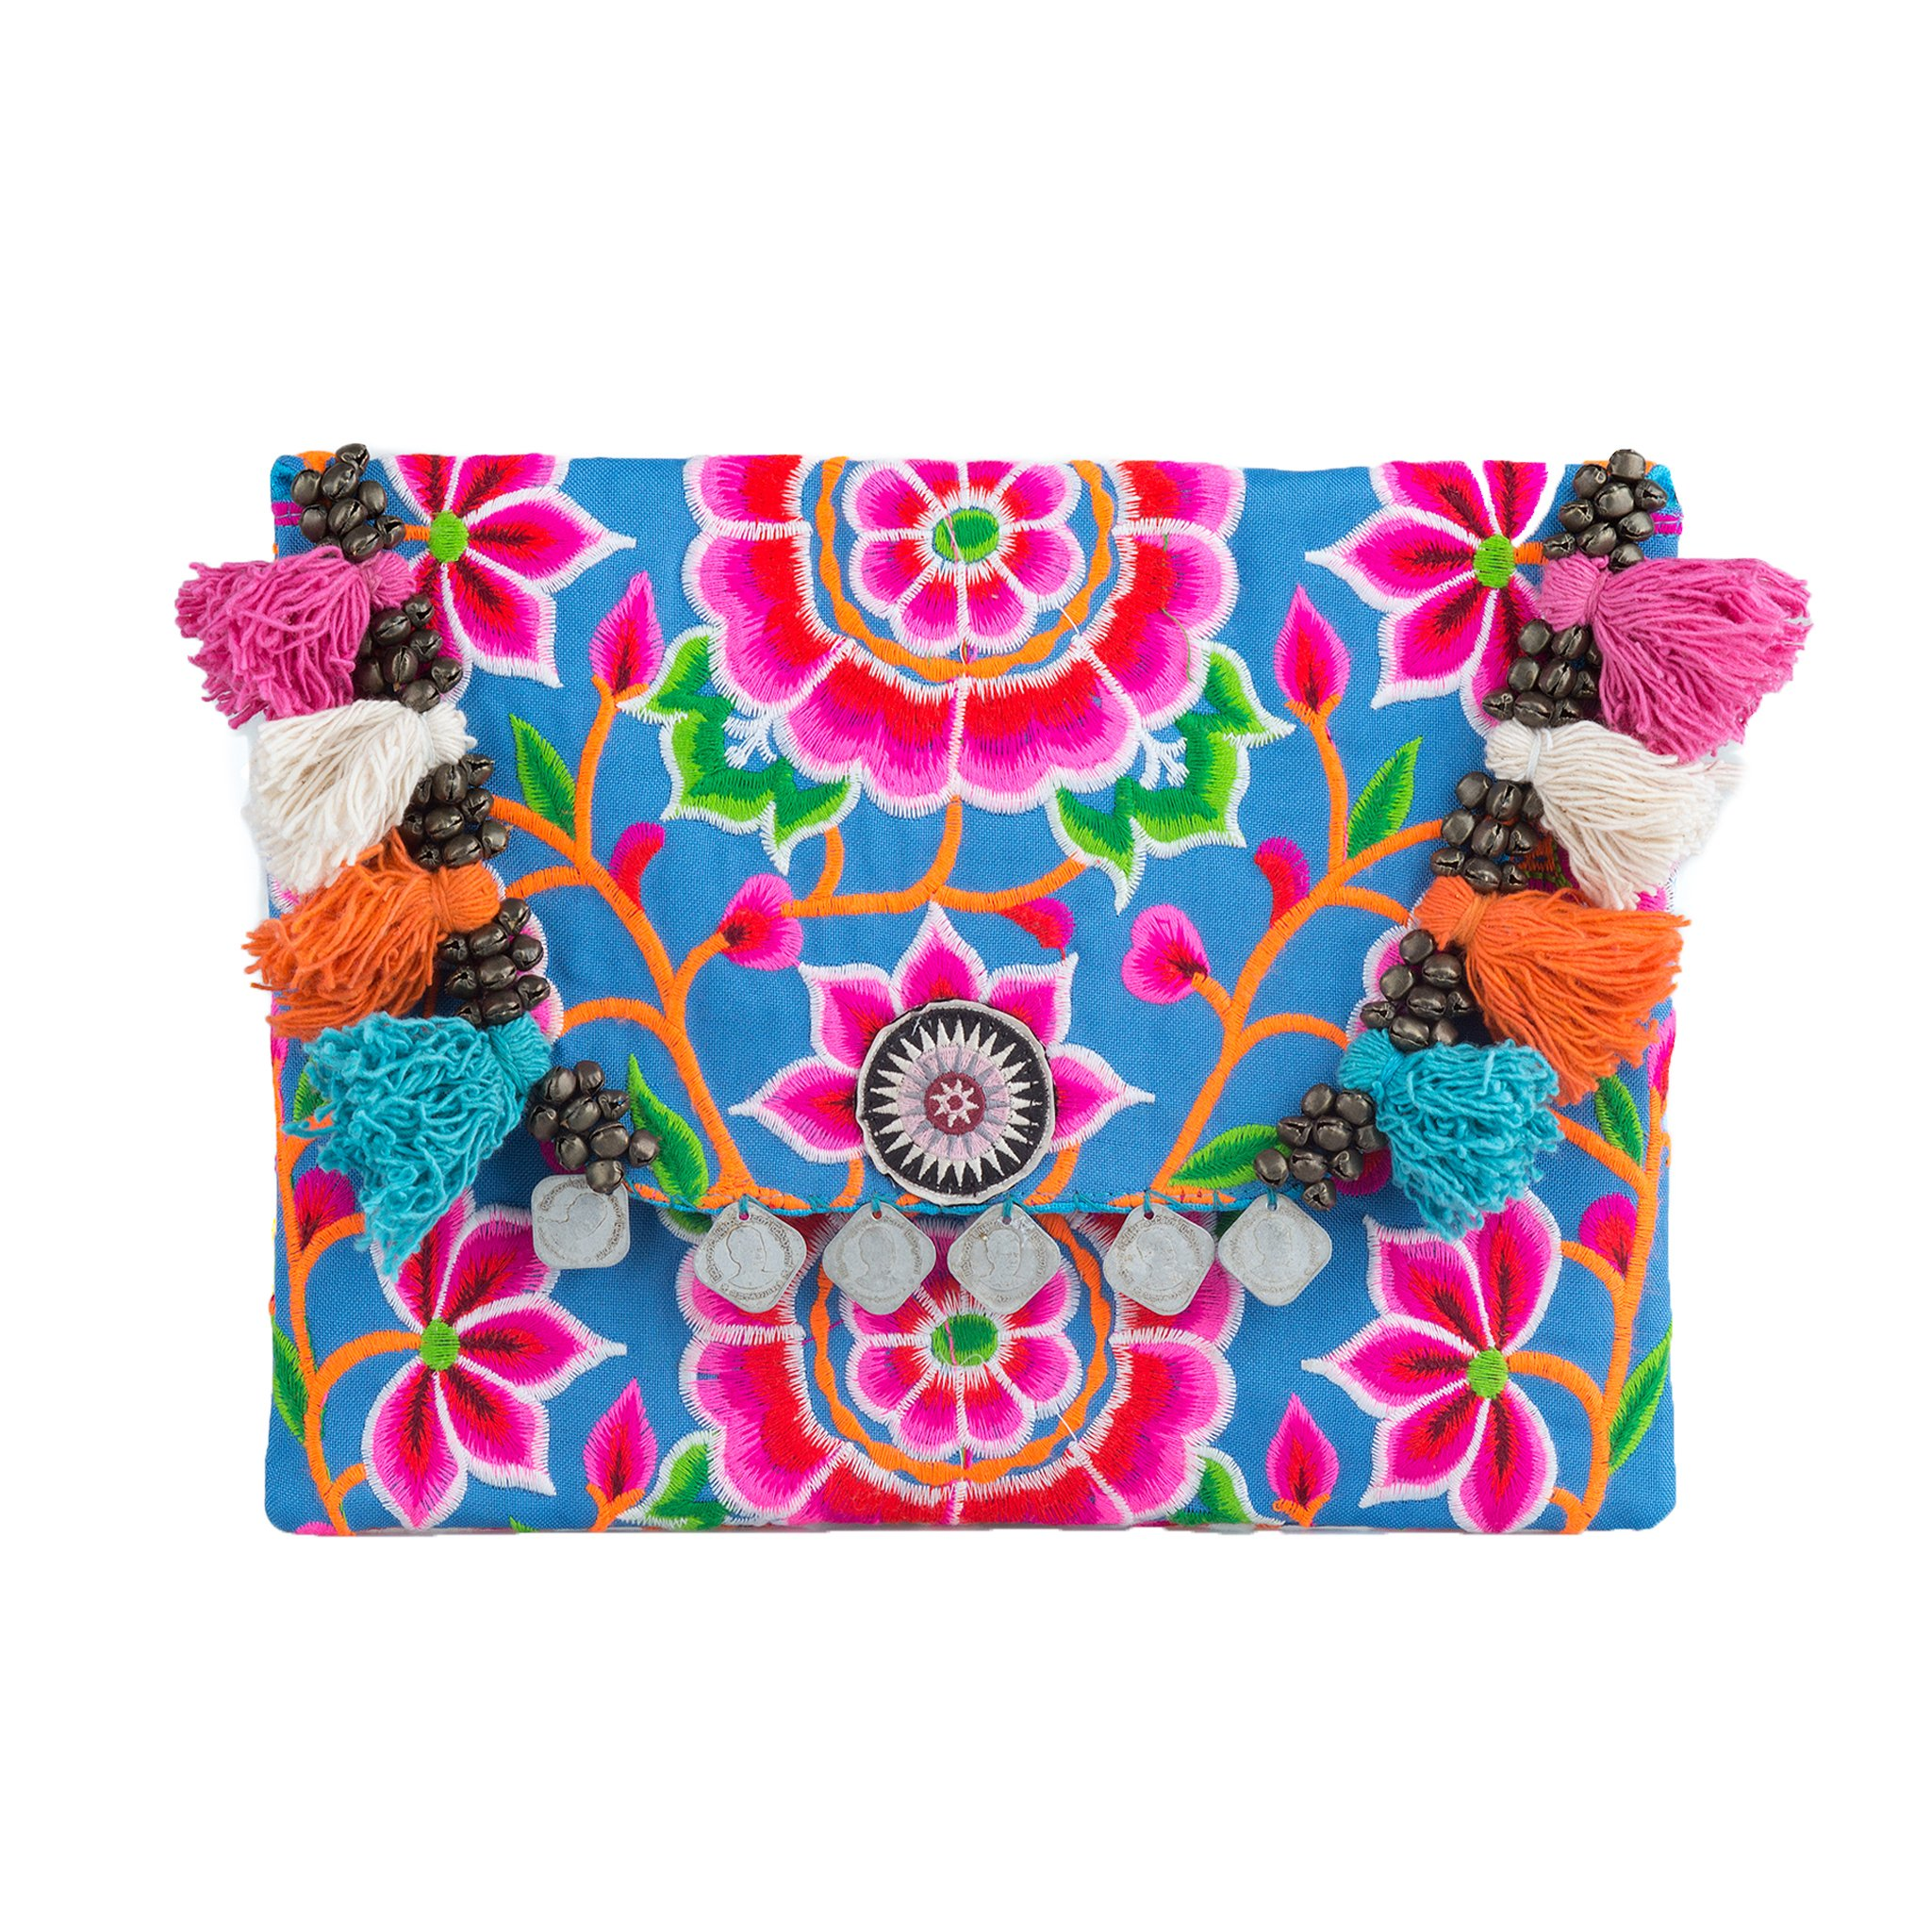 Changnoi Fair Trade Boho Clutch Bag/Purse with Hmong Hill Tribe Embroidered Silk Worm in Blue